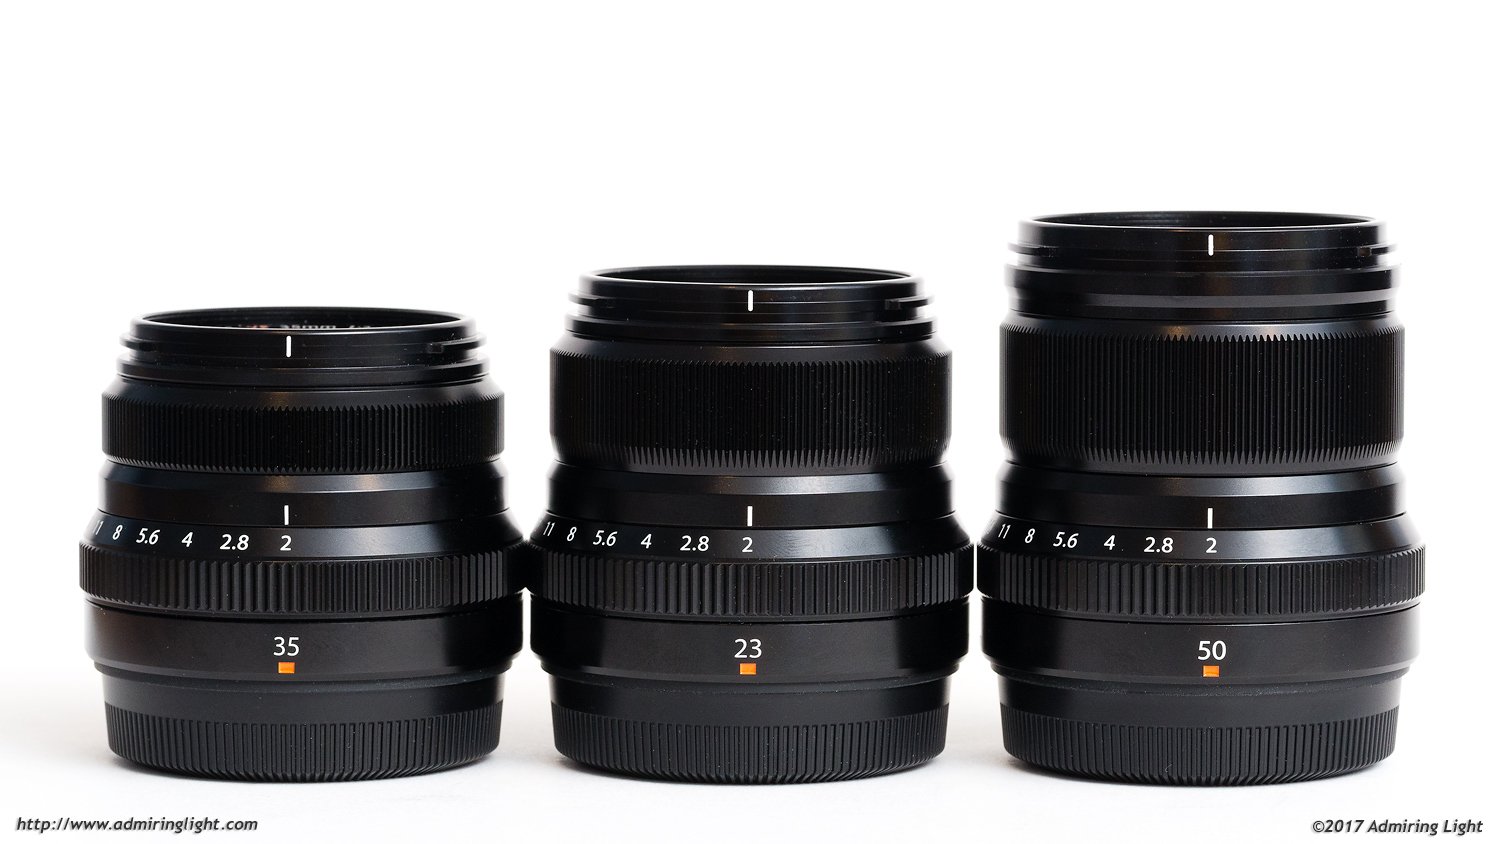 The lenses of Fuji's compact f/2 prime lineup: 35mm f/2, 23mm f/2 and the new 50mm f/2